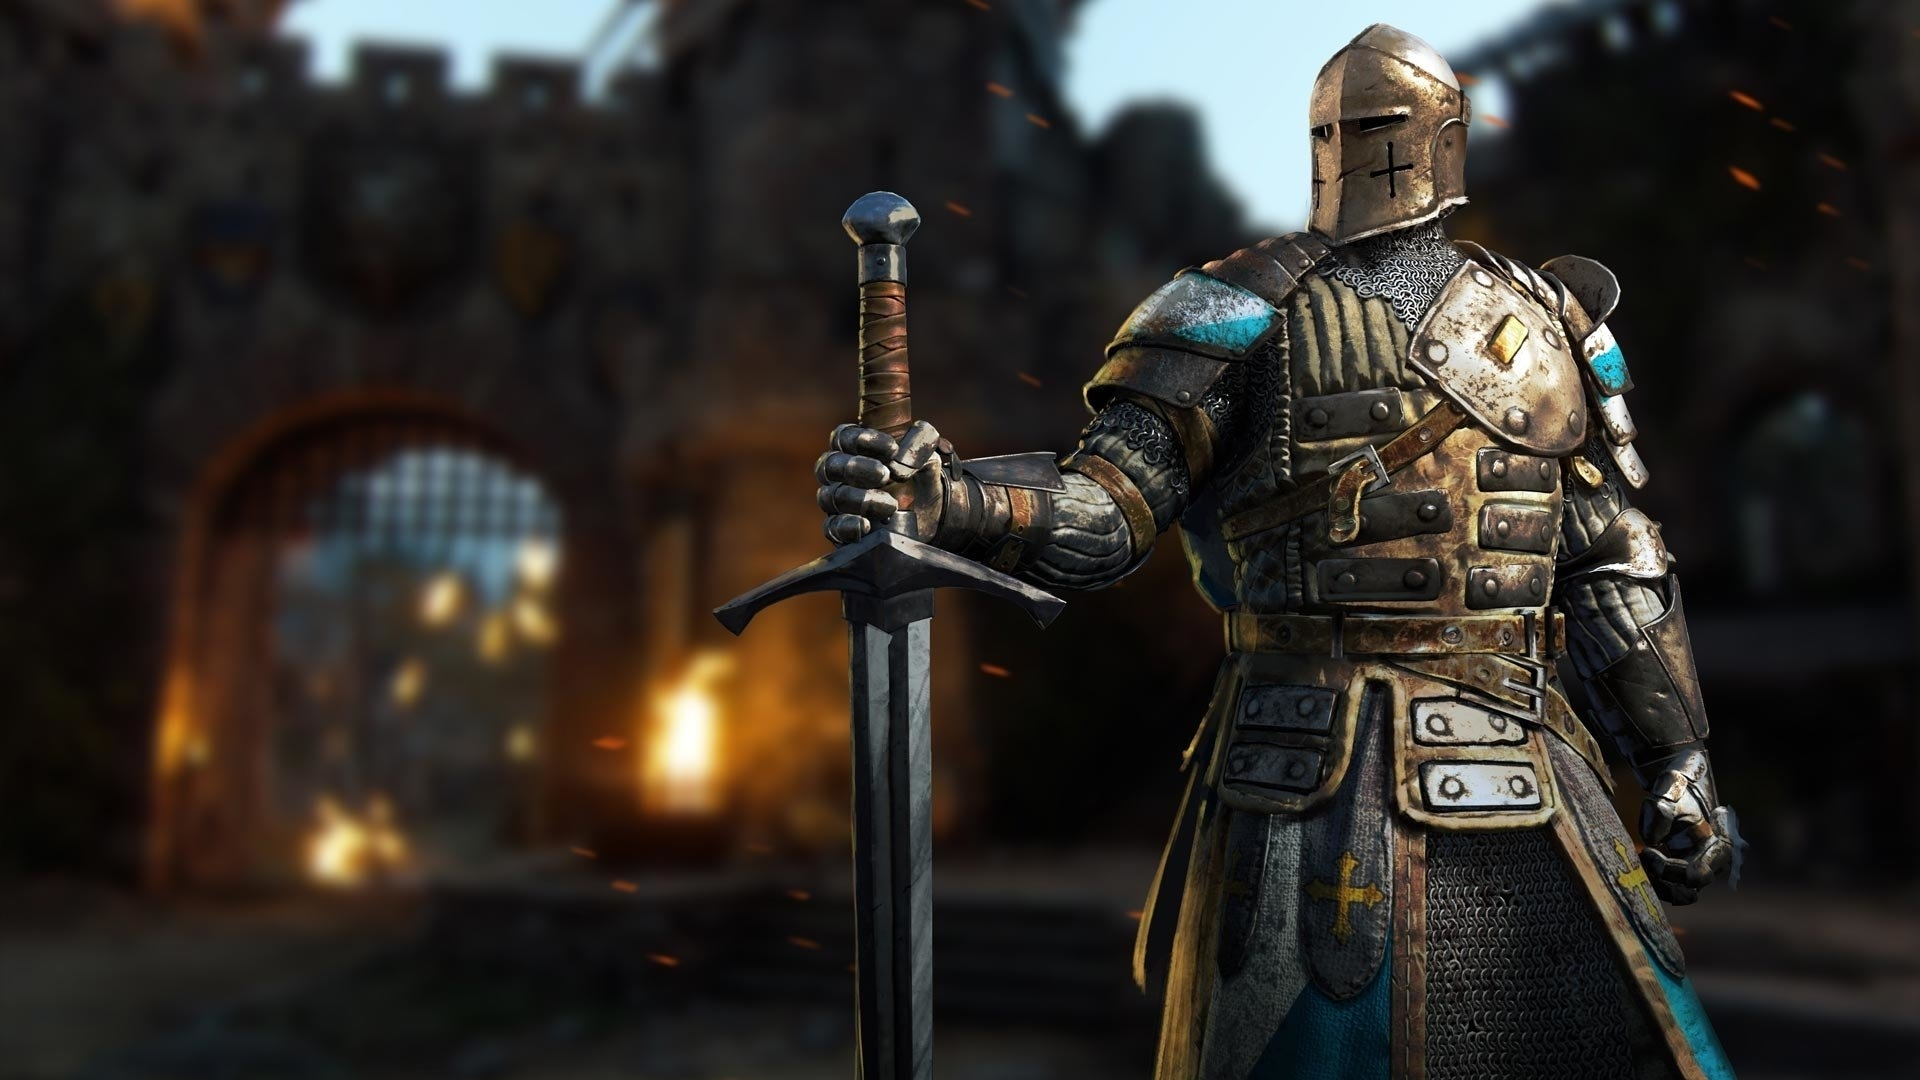 73 for honor hd wallpapers | background images - wallpaper abyss